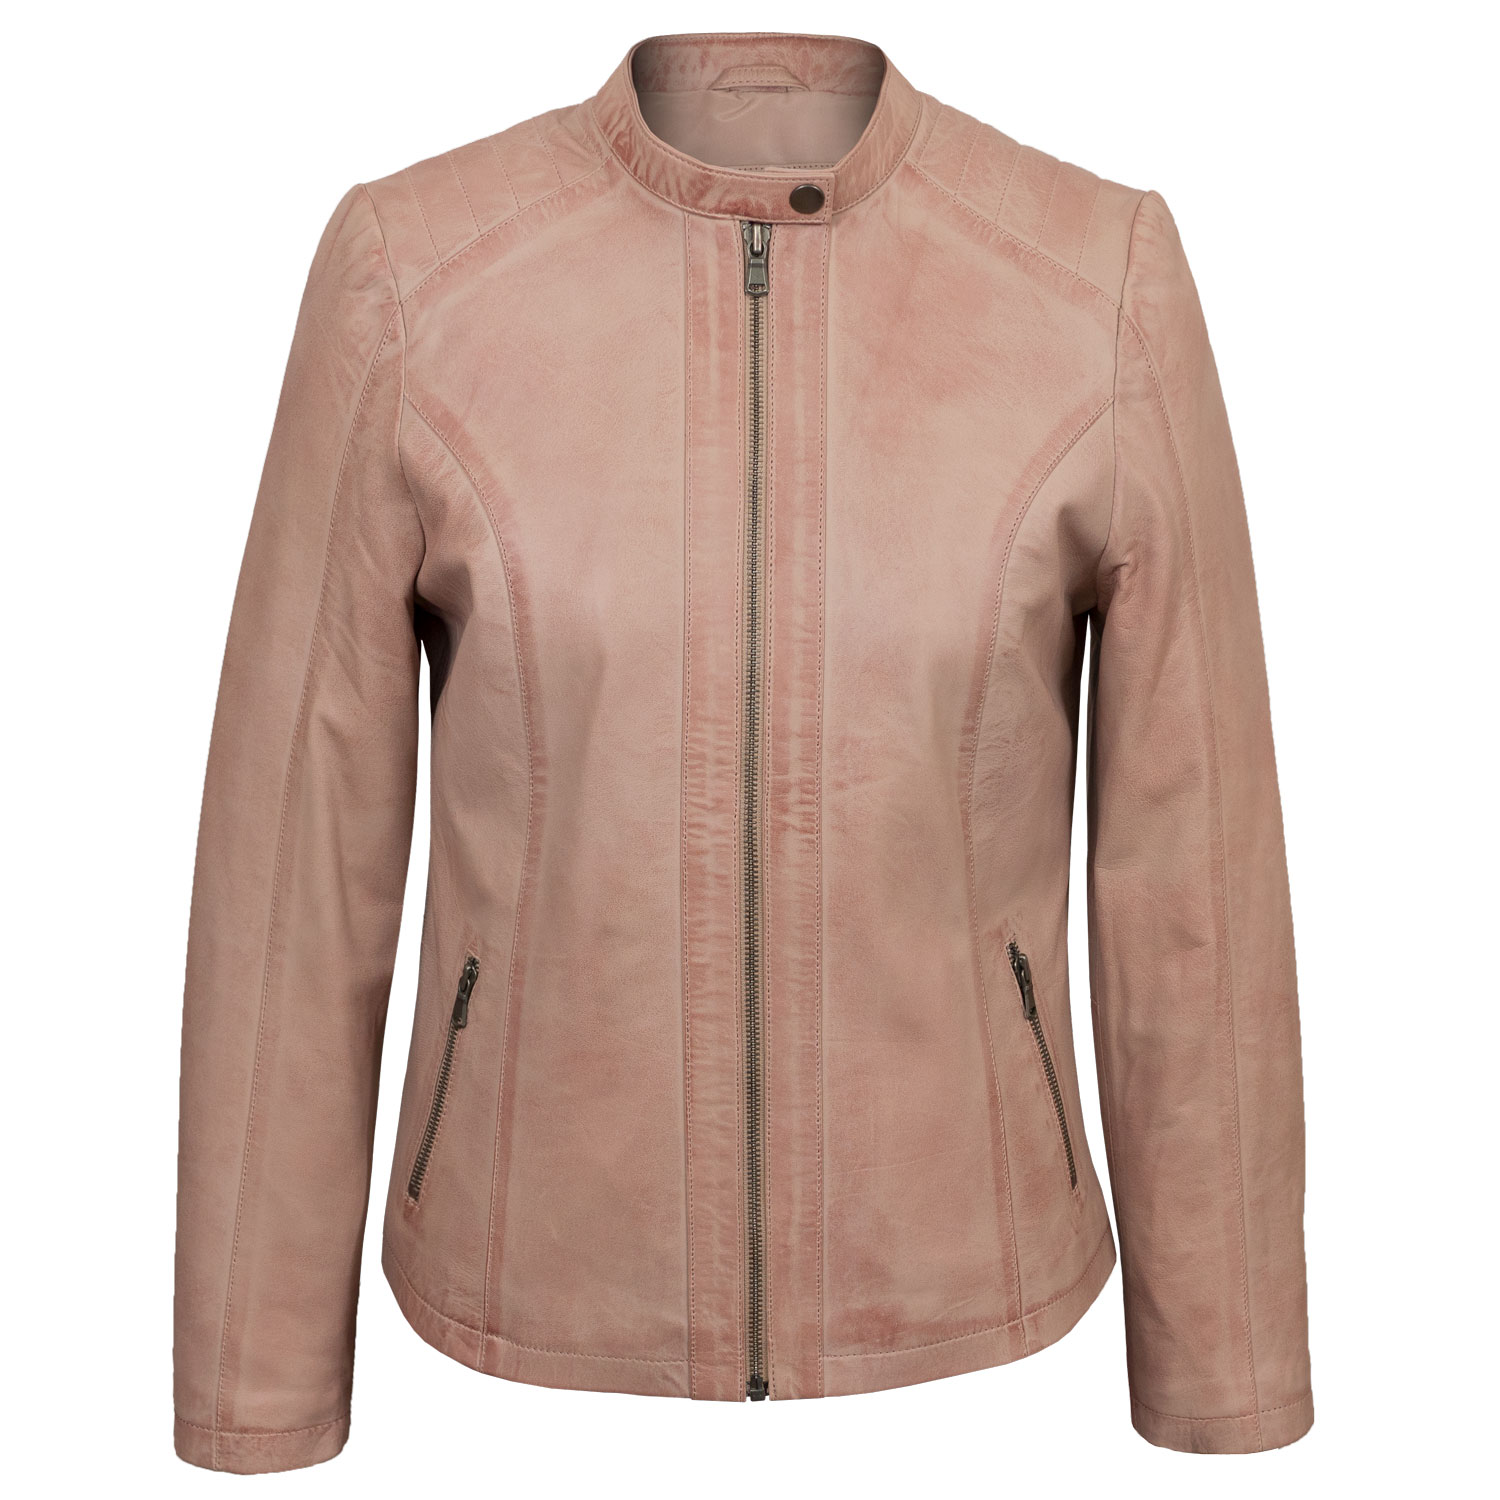 Ladies Pink leather jacket Trudy